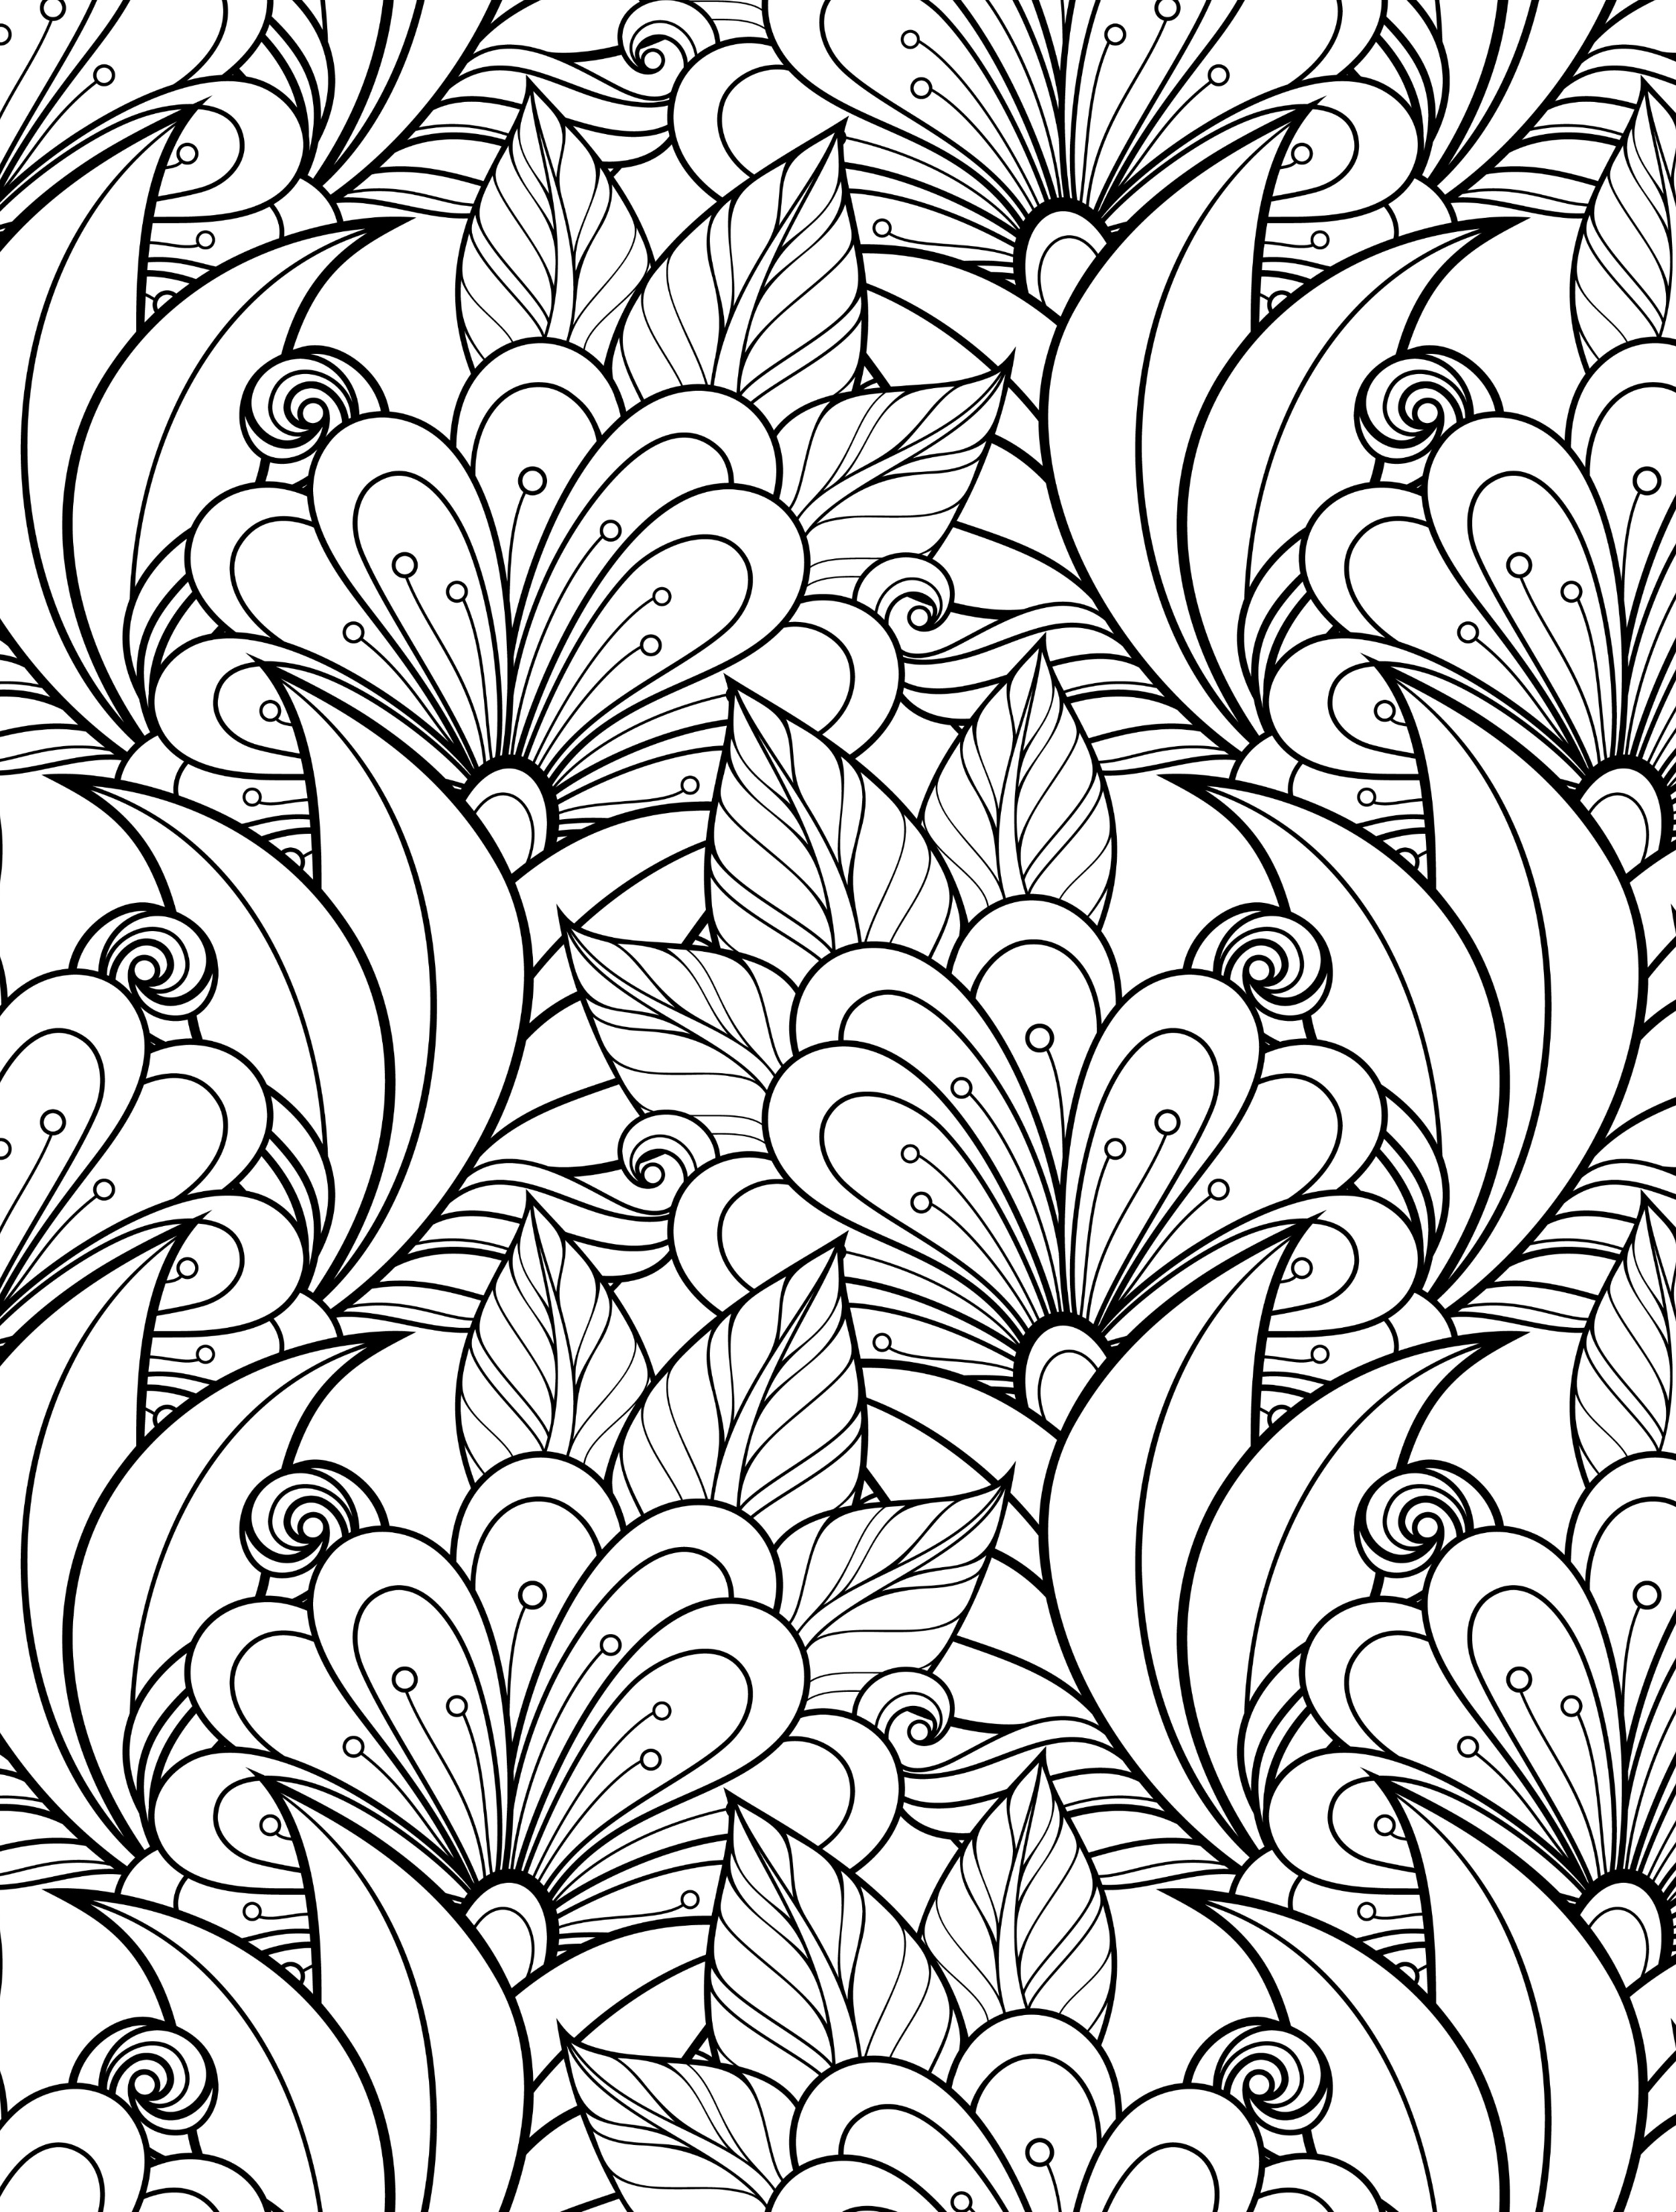 printable coloring pages for adults flowers 7 floral adult coloring pages the graphics fairy coloring printable pages for flowers adults